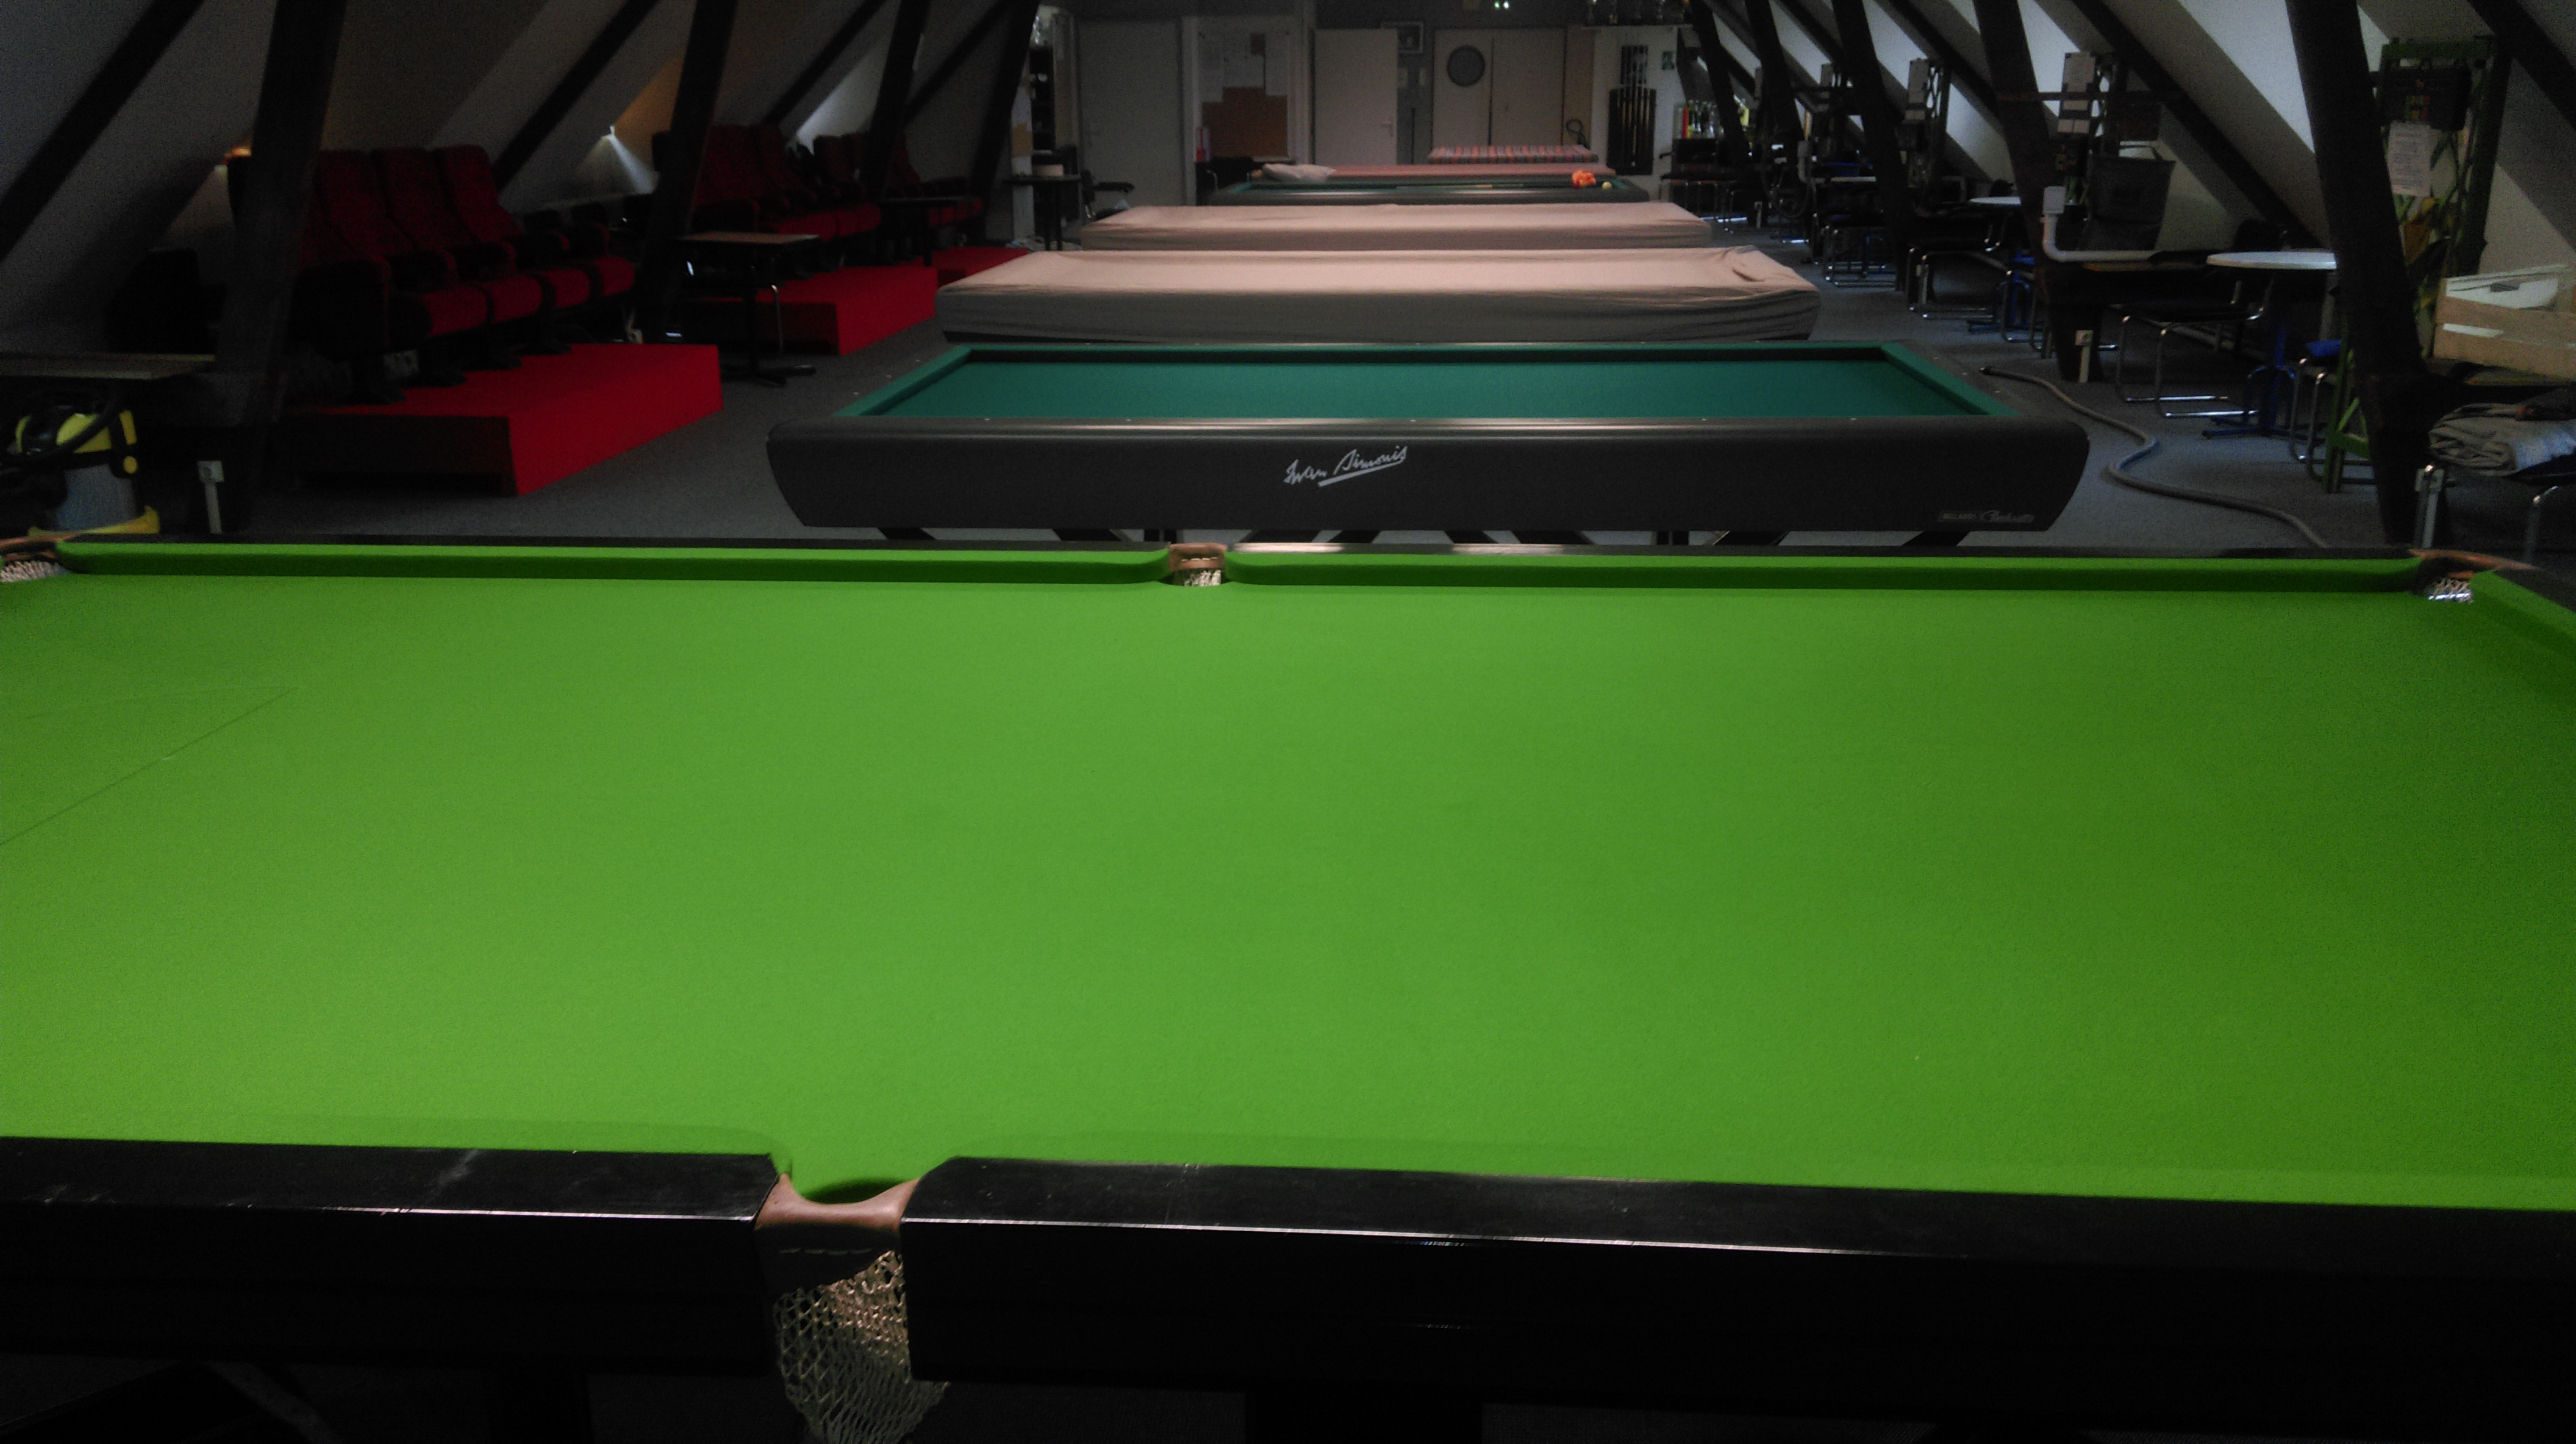 Un Snooker Au Bccl Billard Club Cep Lorient